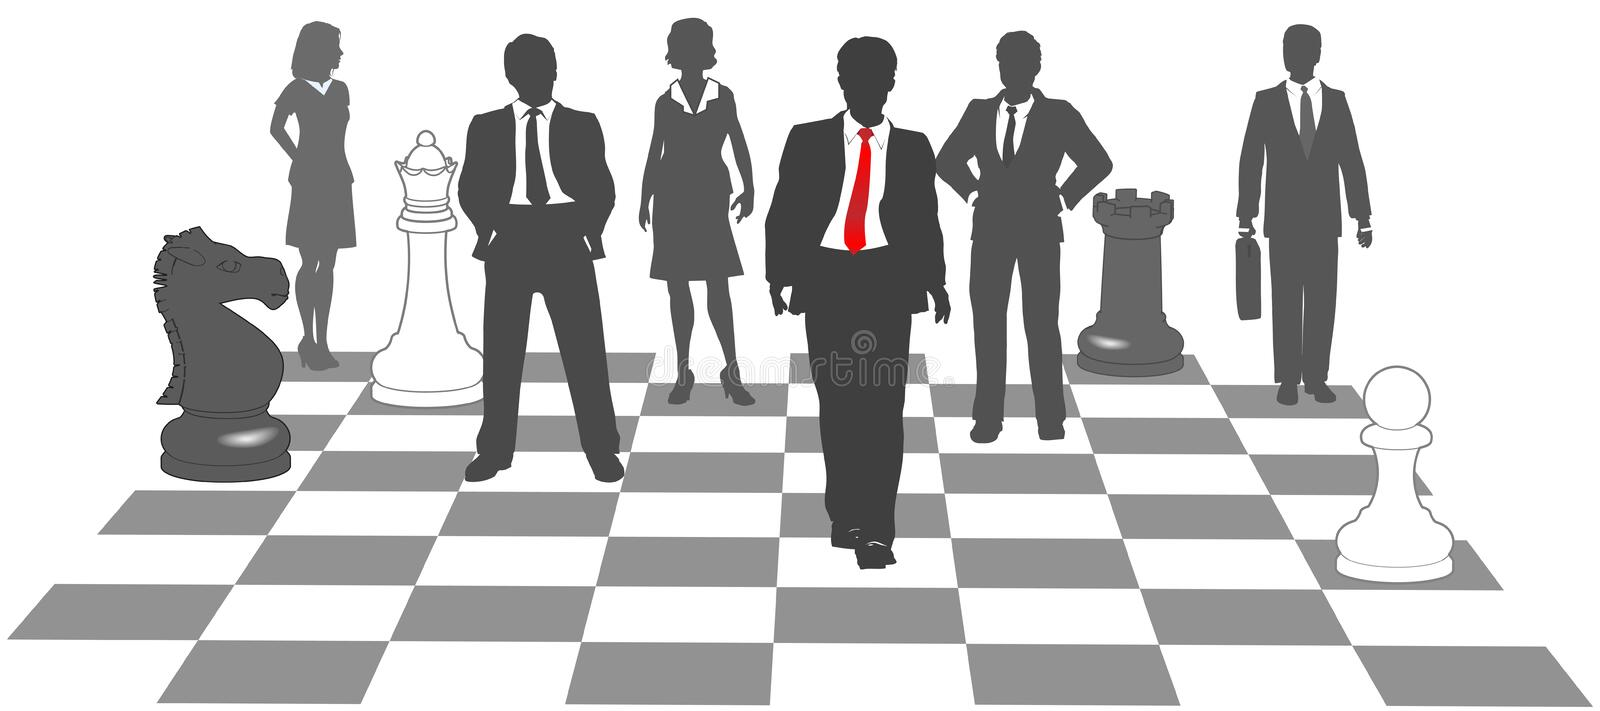 Business people chess team win game stock illustration